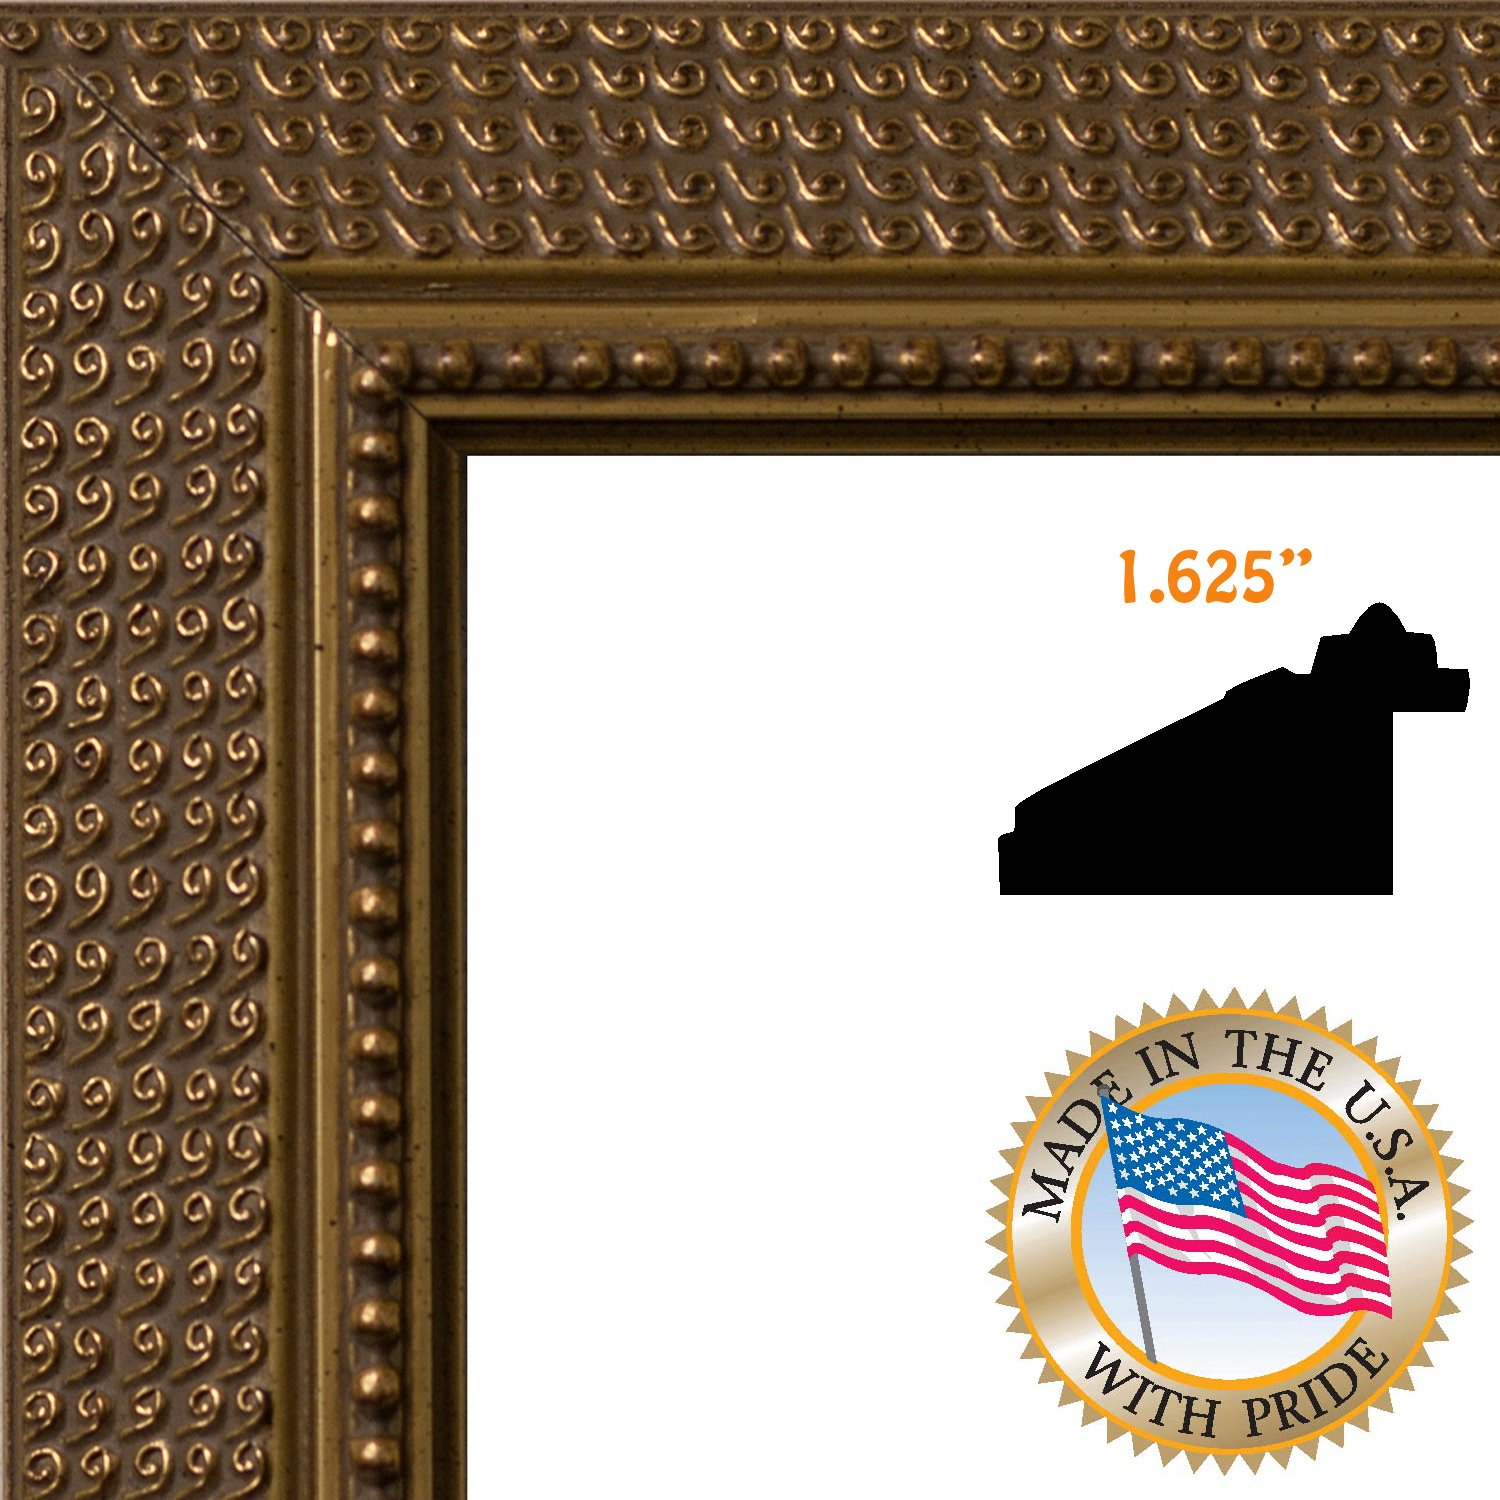 Amazon.com - ArtToFrames 12x17 / 12 x 17 Picture Frame Dark Gold ...